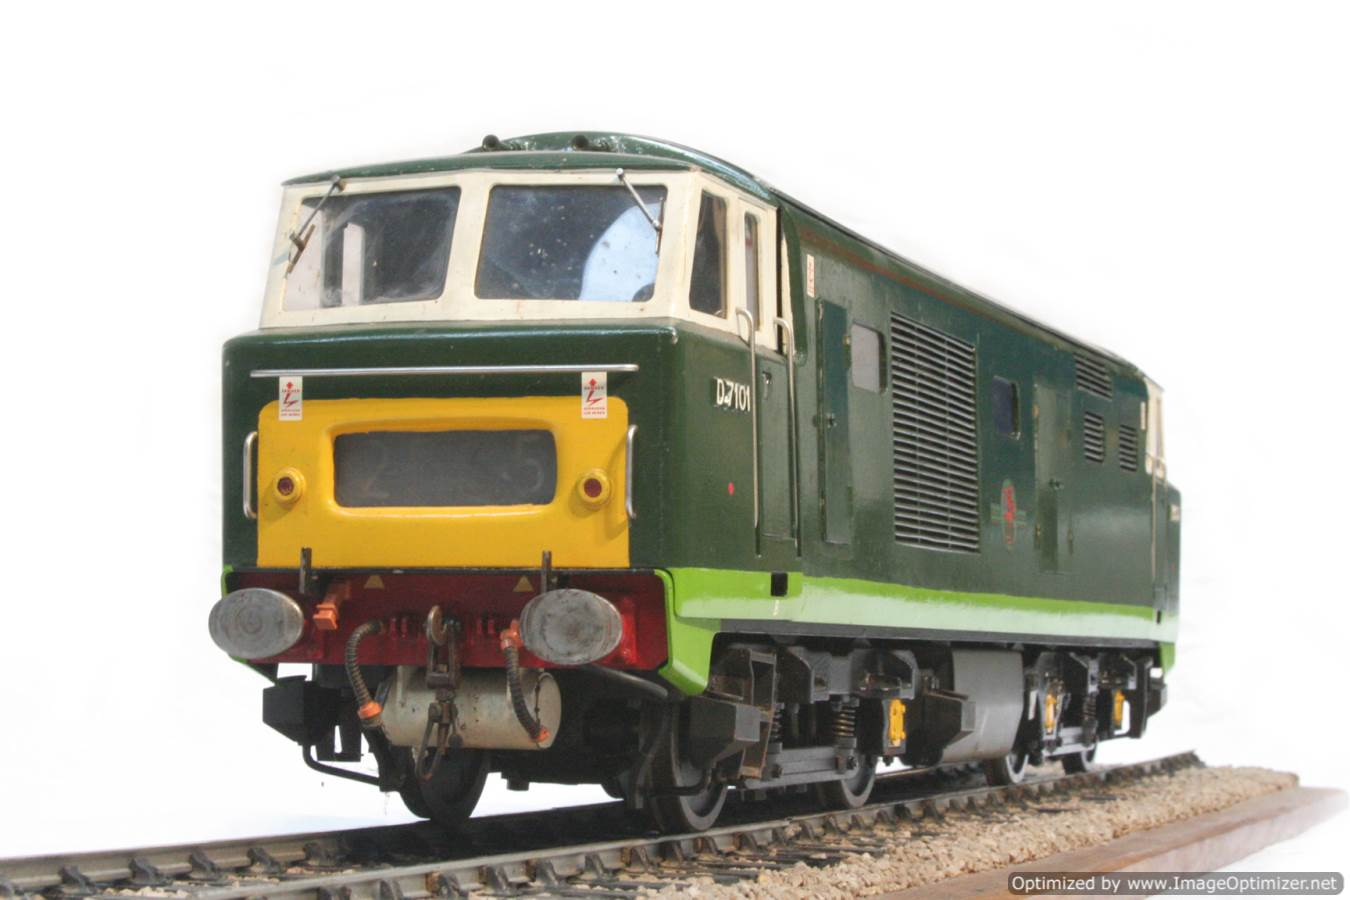 test 3 and a half inch gauge Hymek BR Class 35 diesel miniature locomotive for sale 25-Optimized